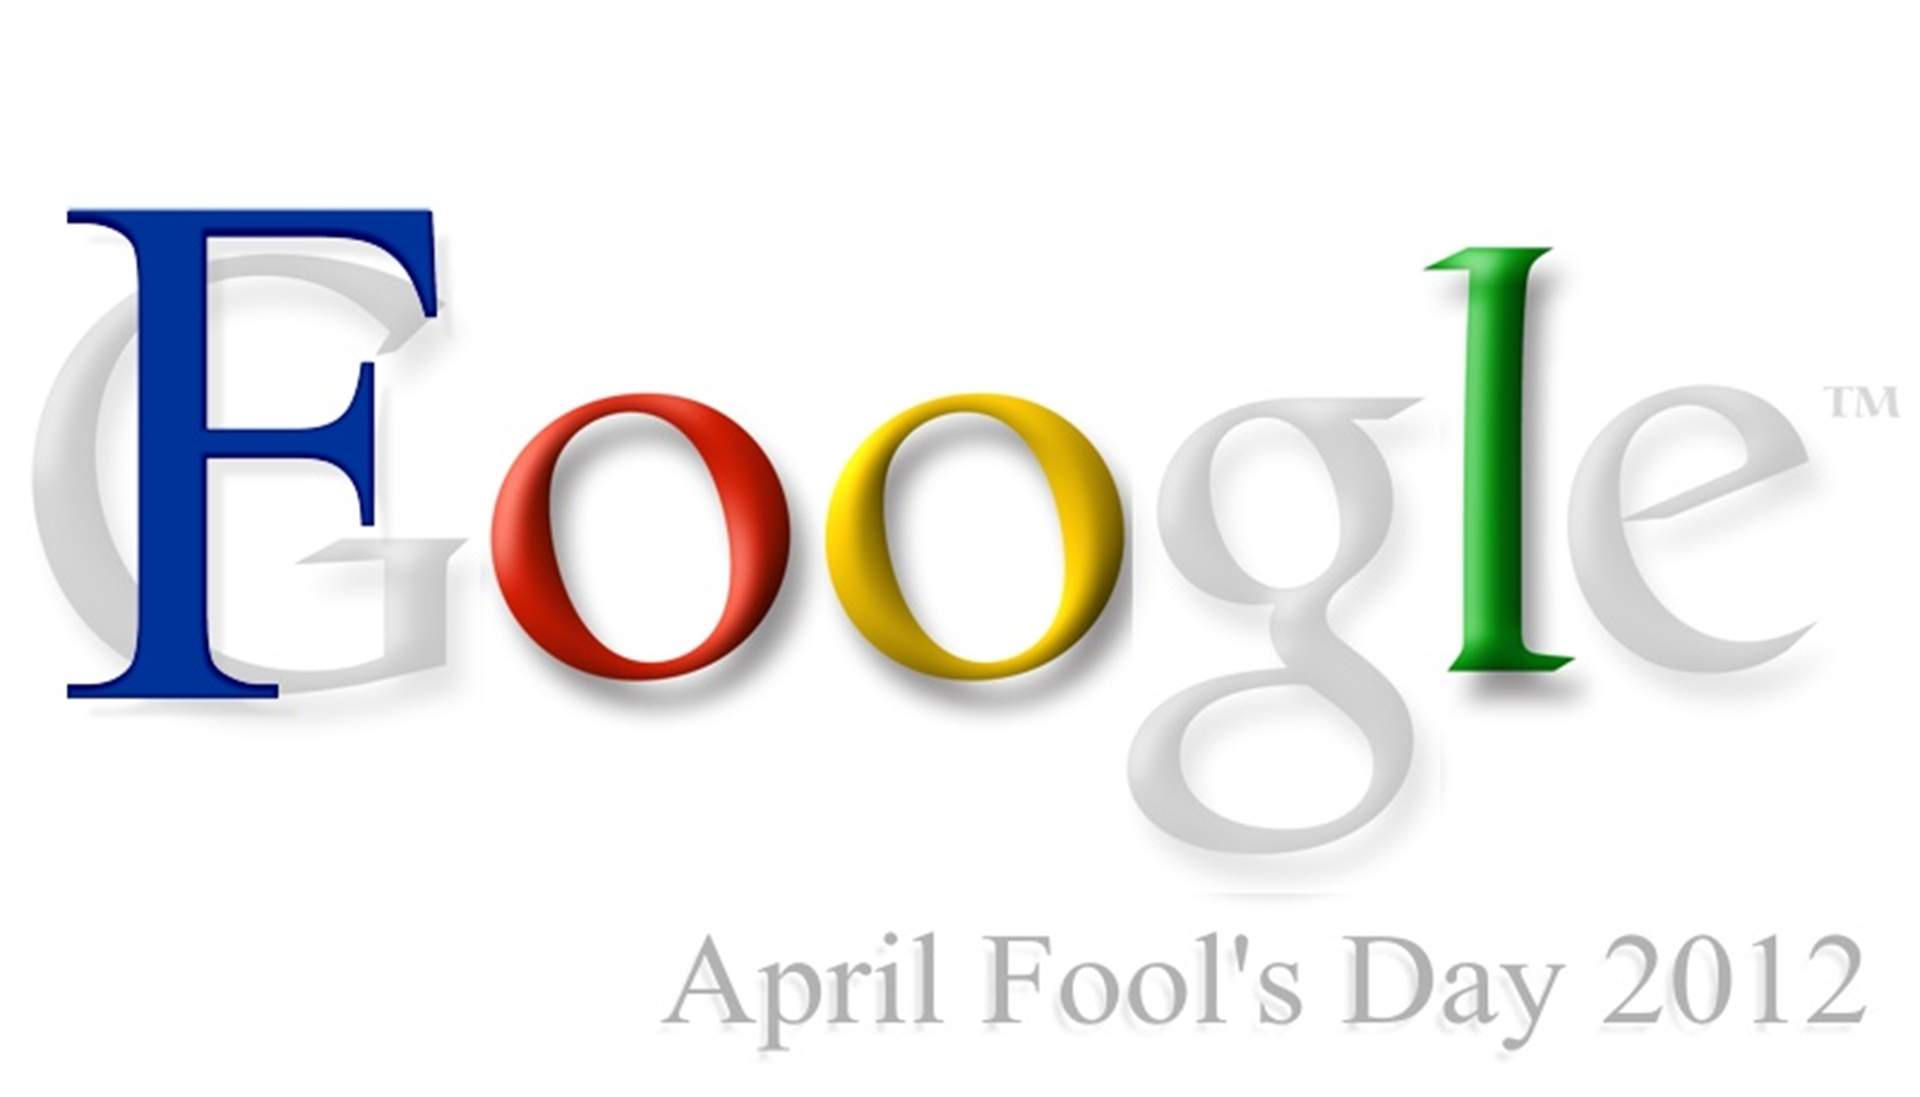 Google dating april fools